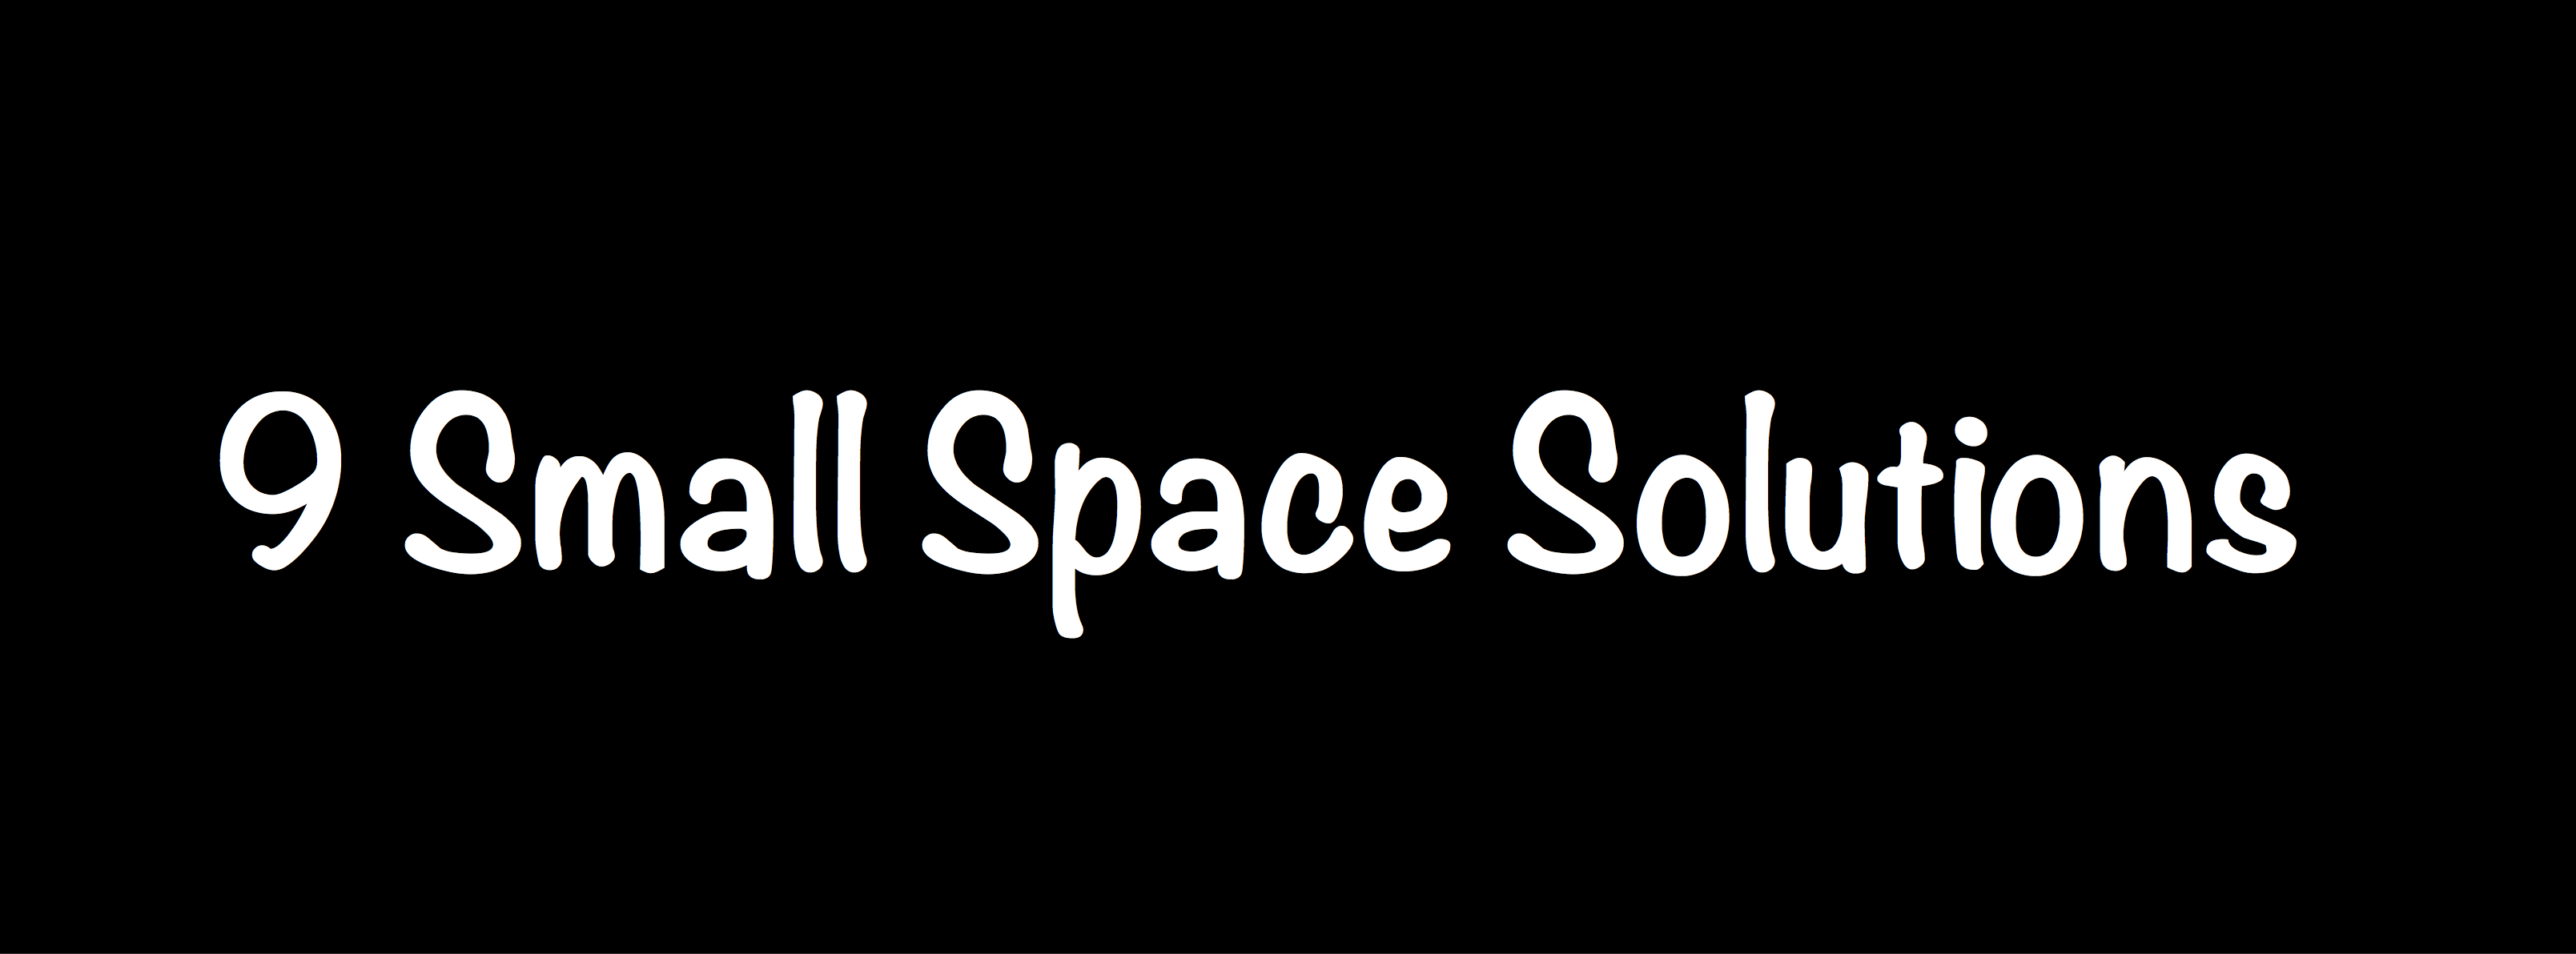 9 small space solutions.png